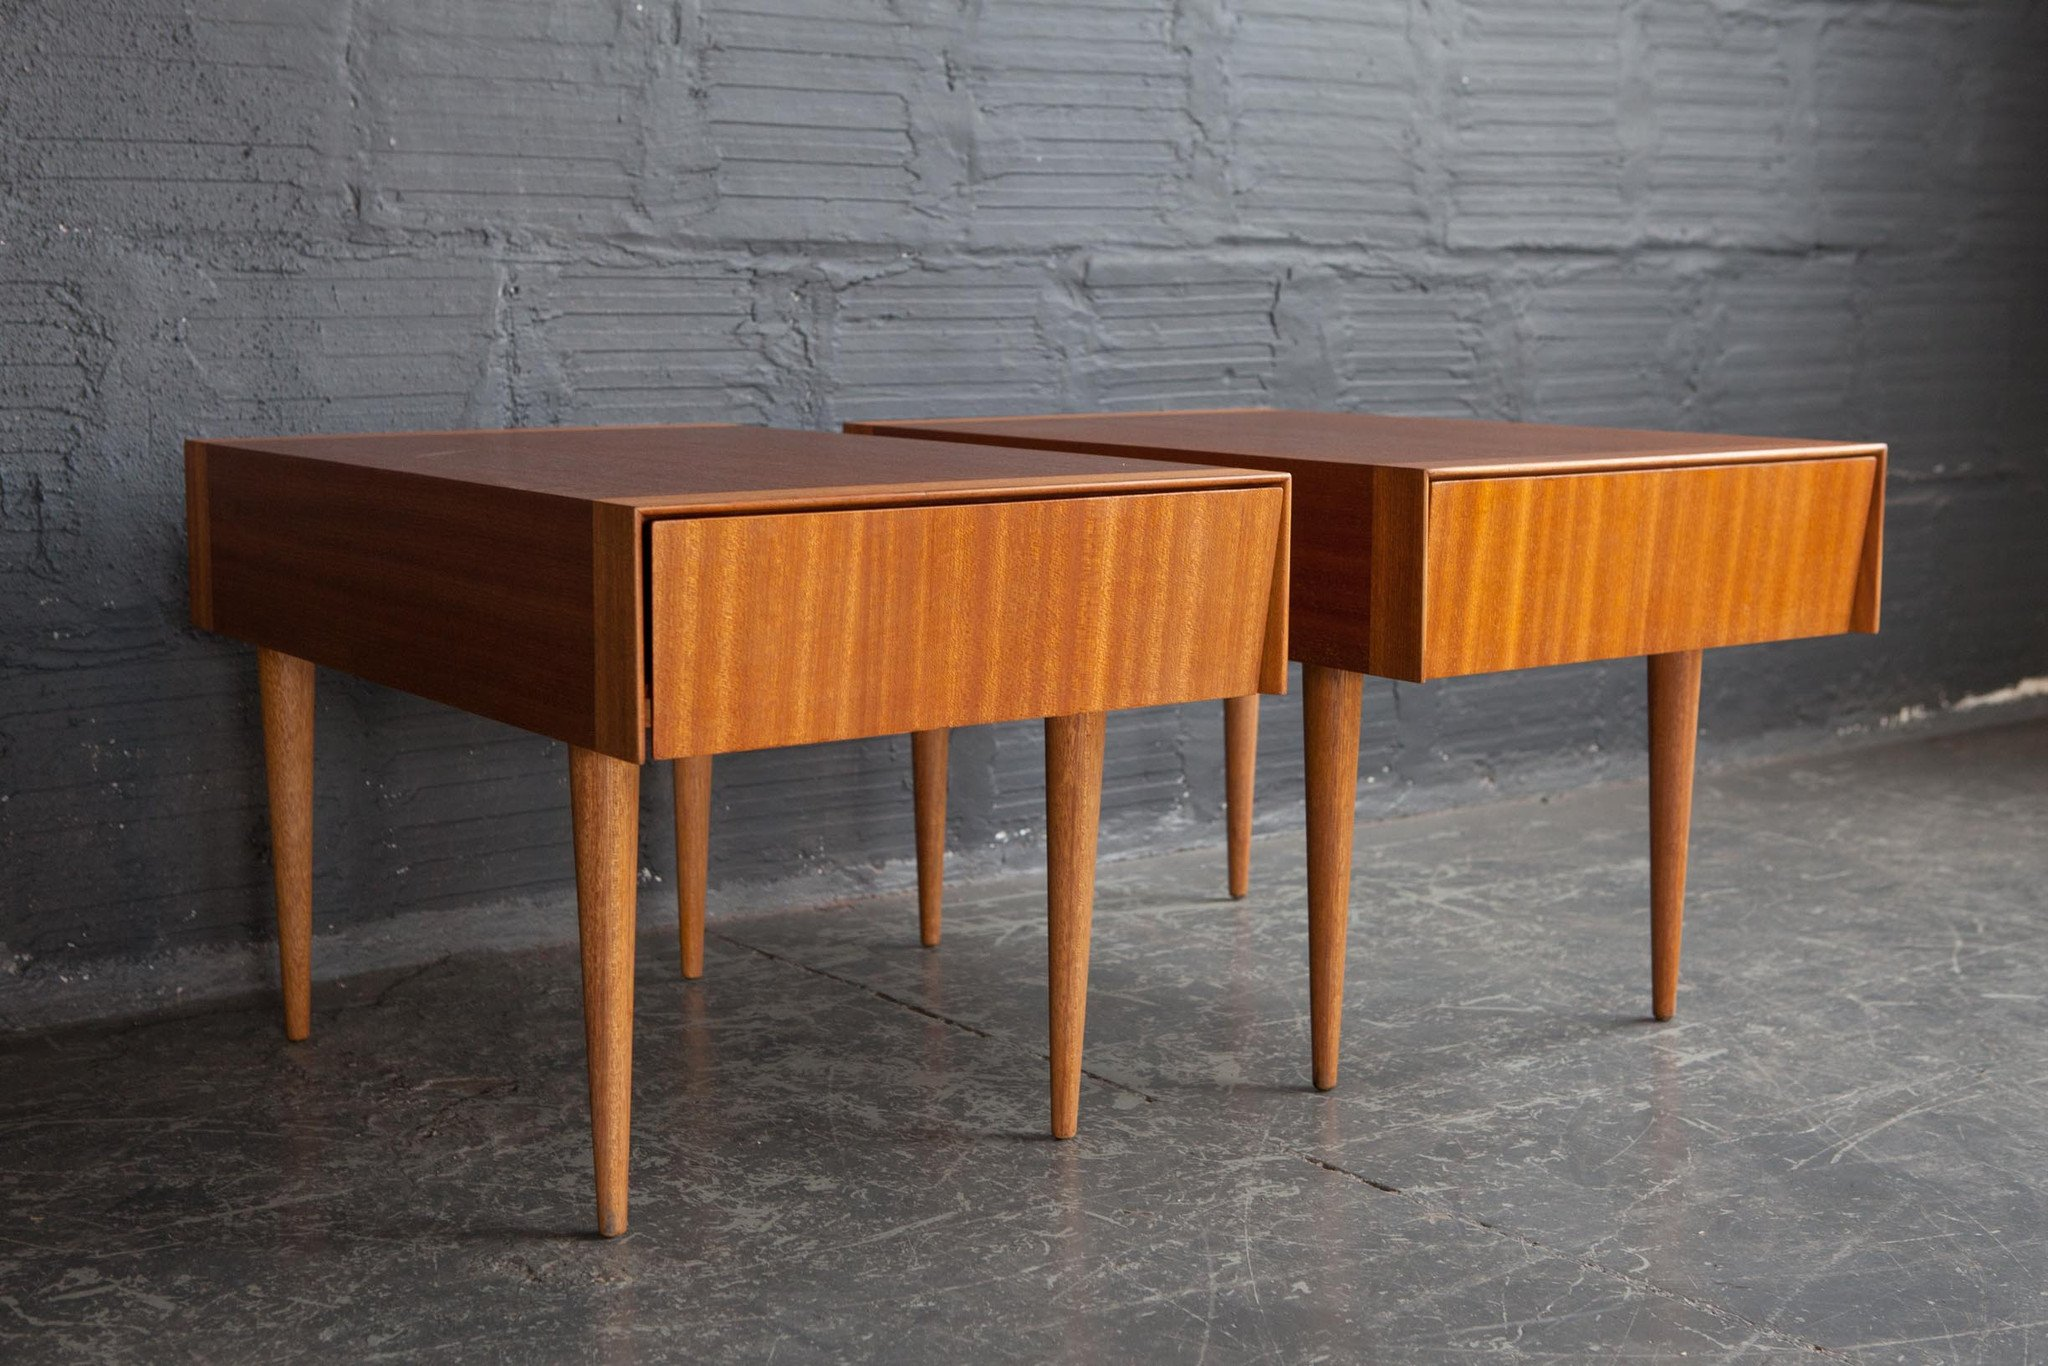 brown saltman mahogany end tables pair the good mod table acme bar and coffee standard lamp height lazy boy furniture corporate office diy industrial pipe frosted glass side ethan